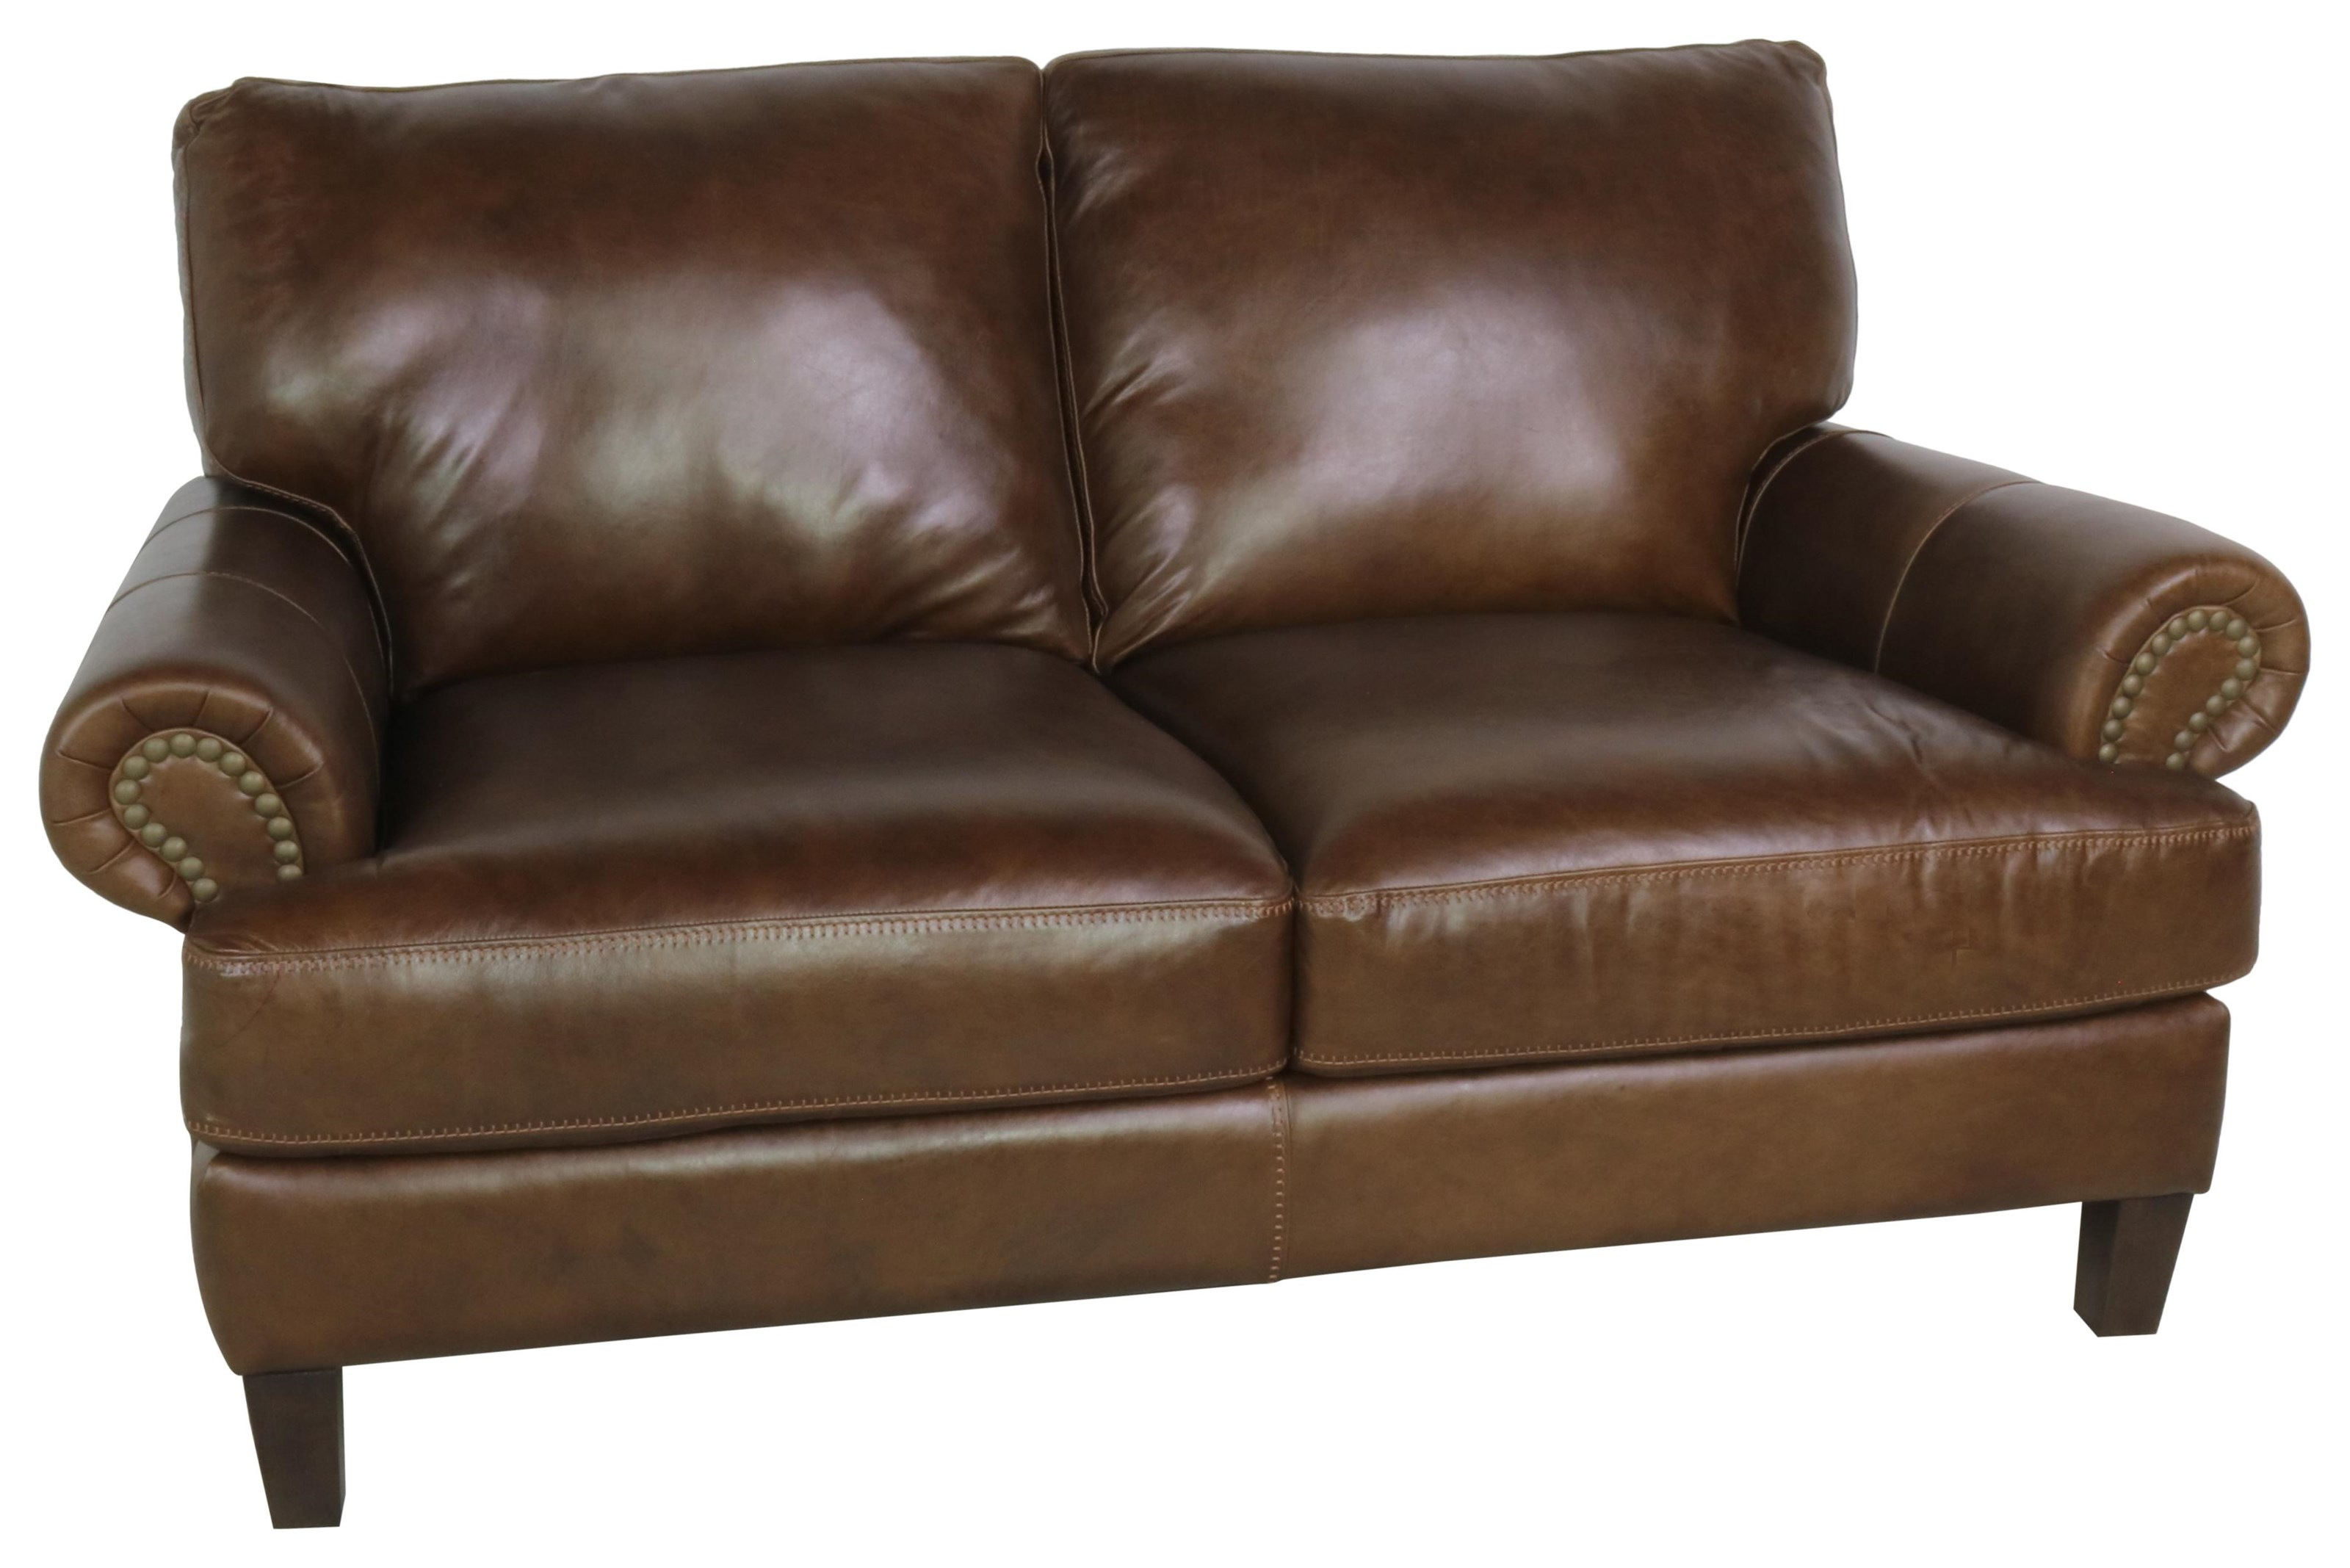 7386 Italian Leather Loveseat by Giovanni Leather at Sprintz Furniture